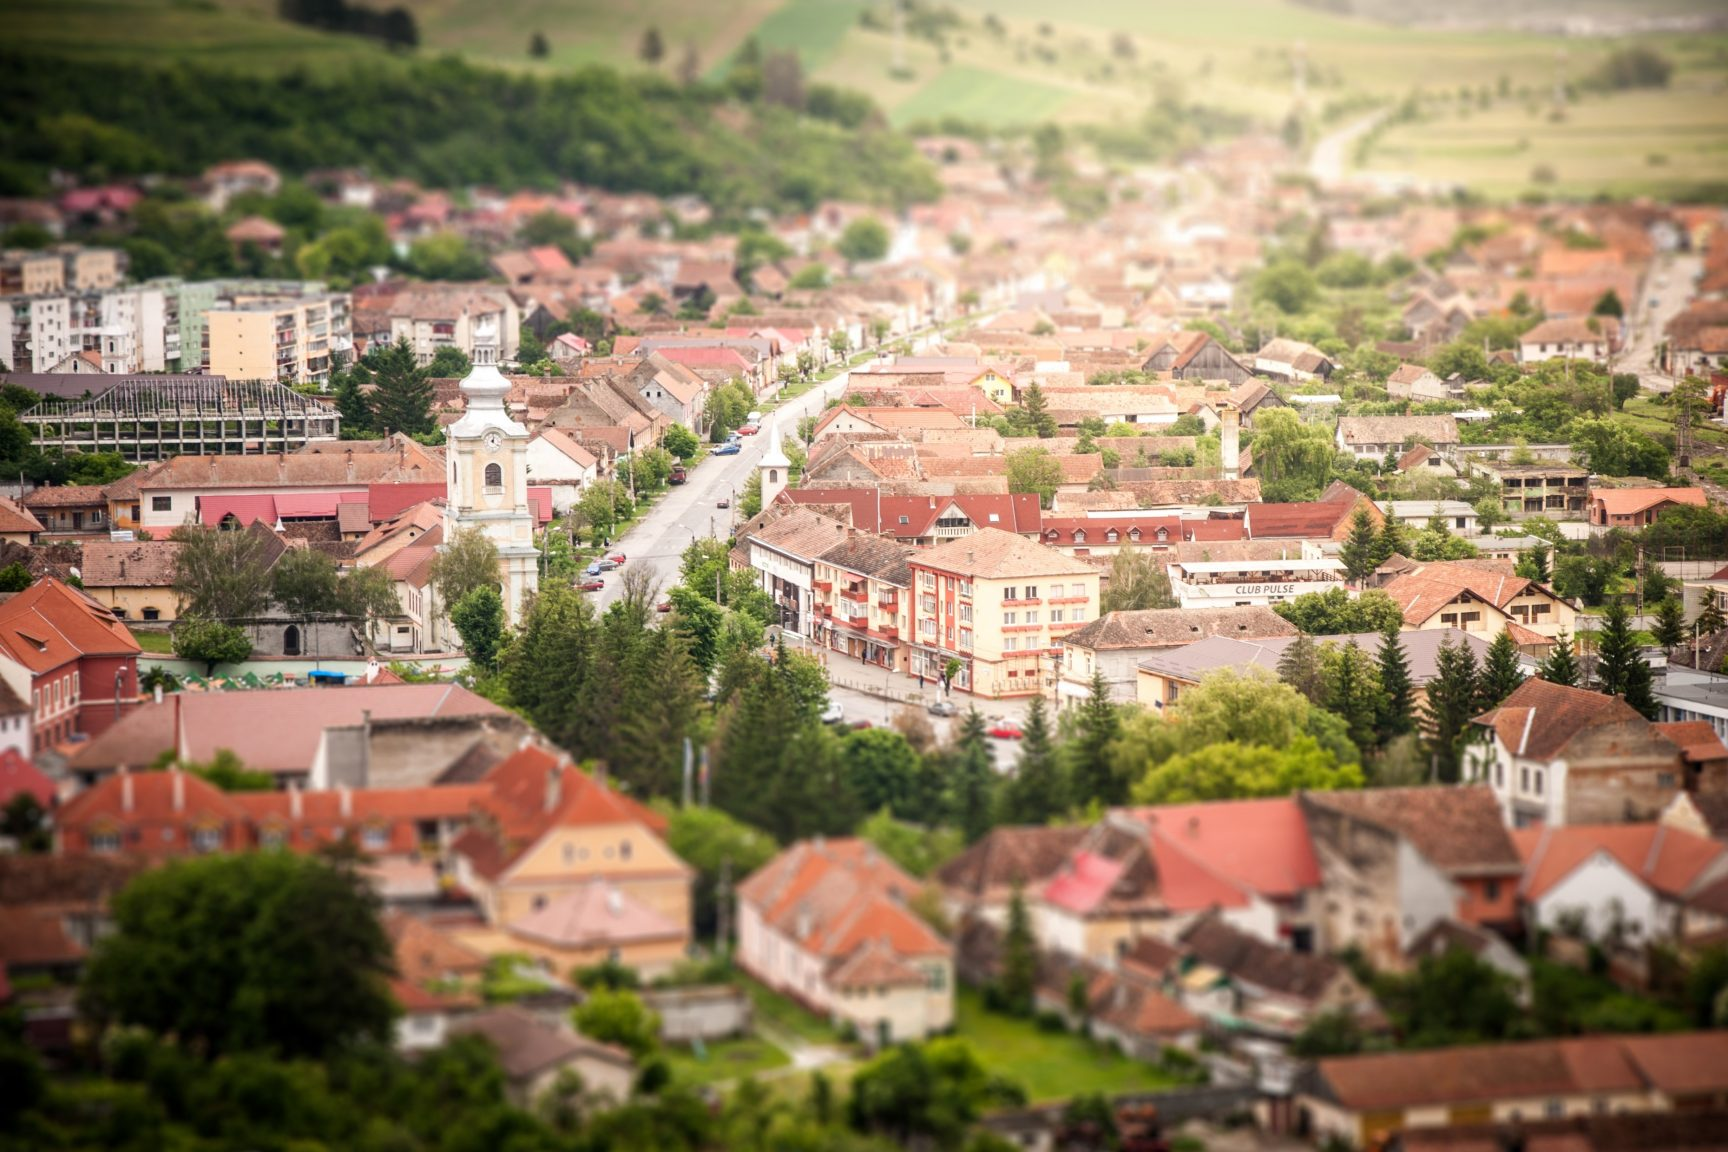 A small town in a rural setting.